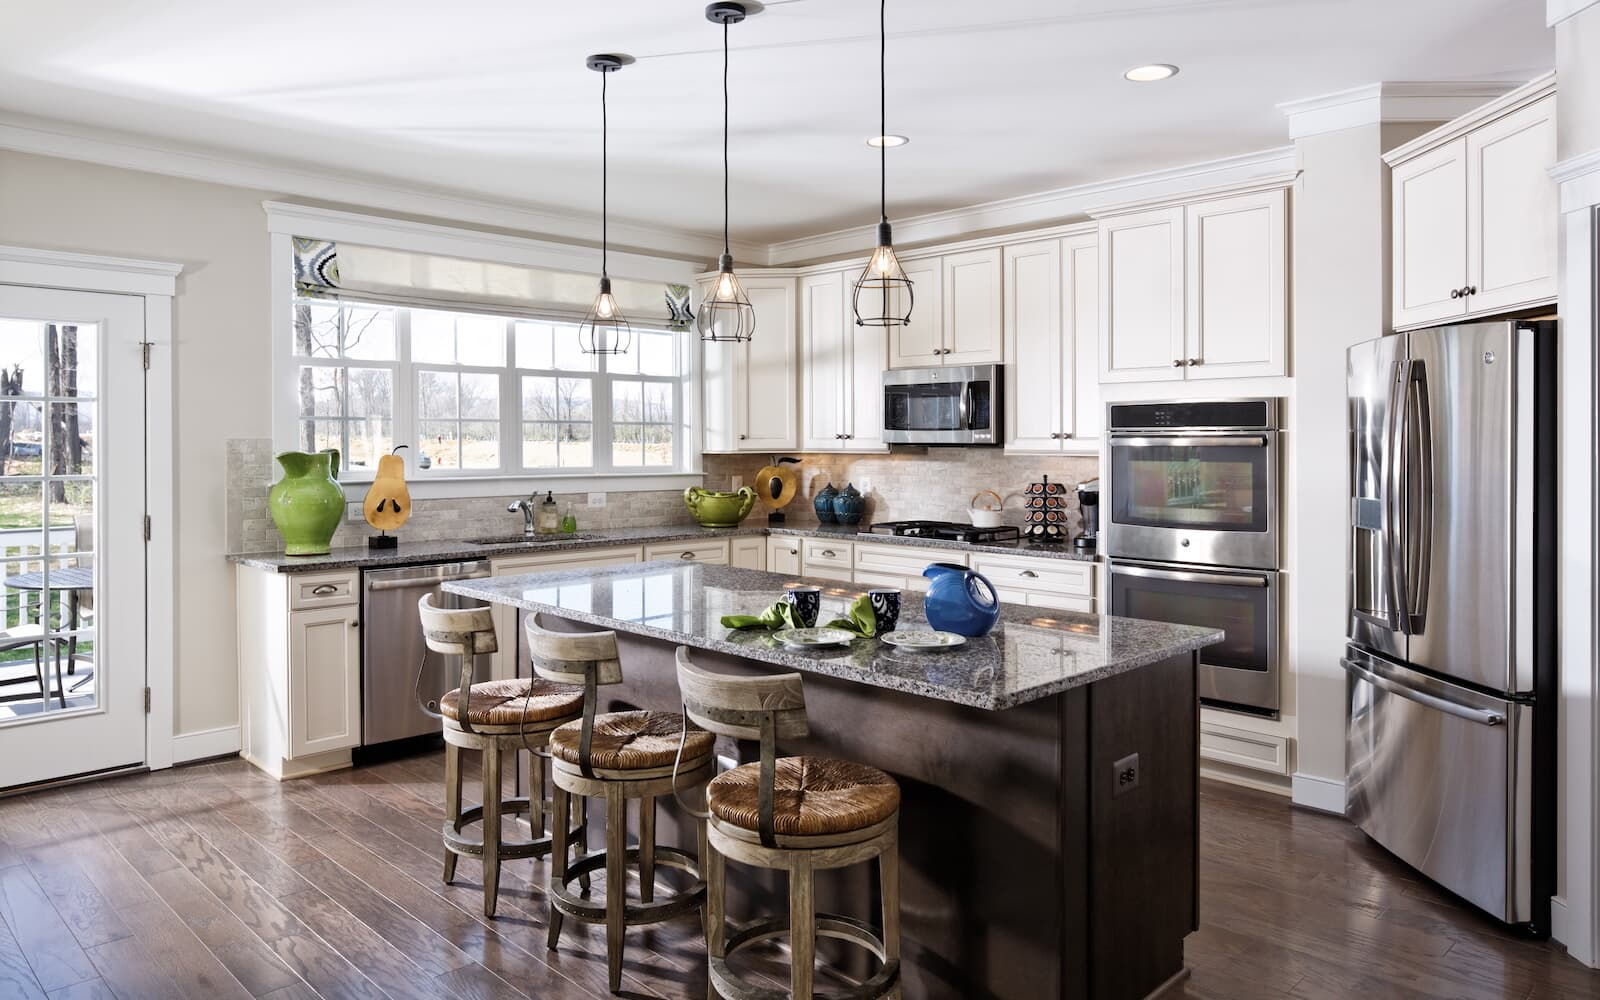 BecknerII-kitchen-single-family-home-potomac-shores-va-potomac-shores-brookfield-residential